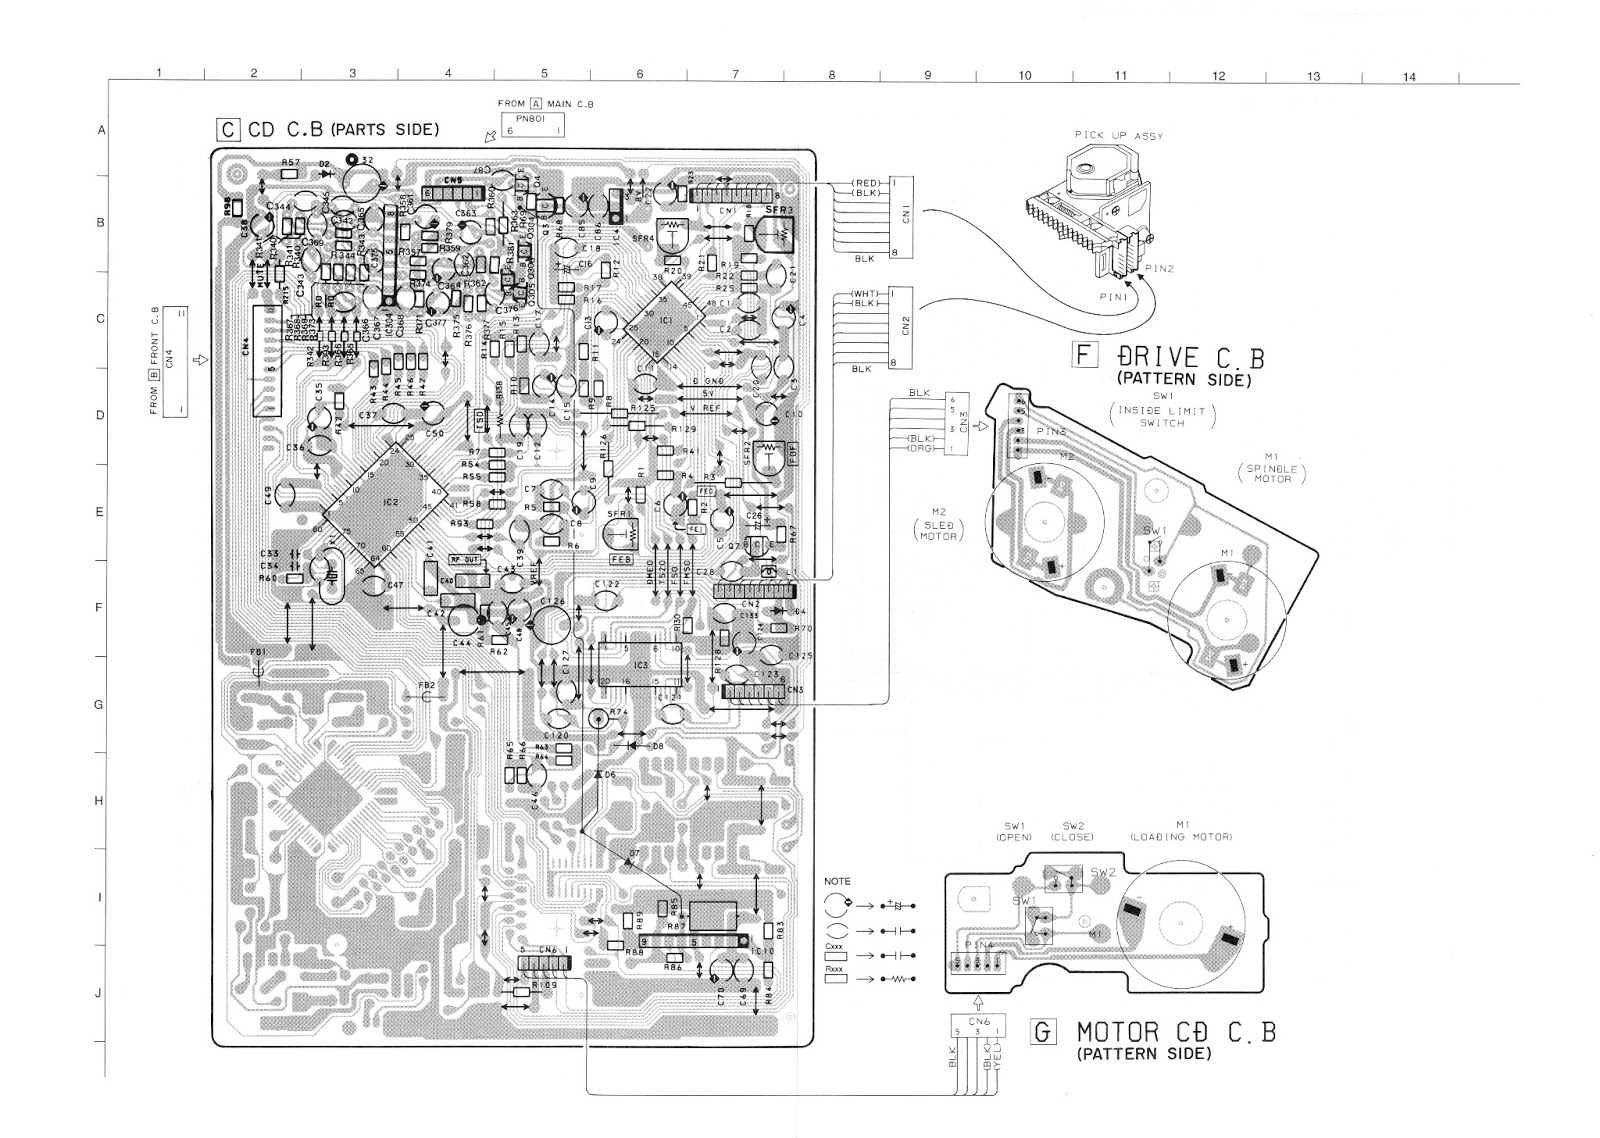 1997 ford f150 cd player wiring diagram